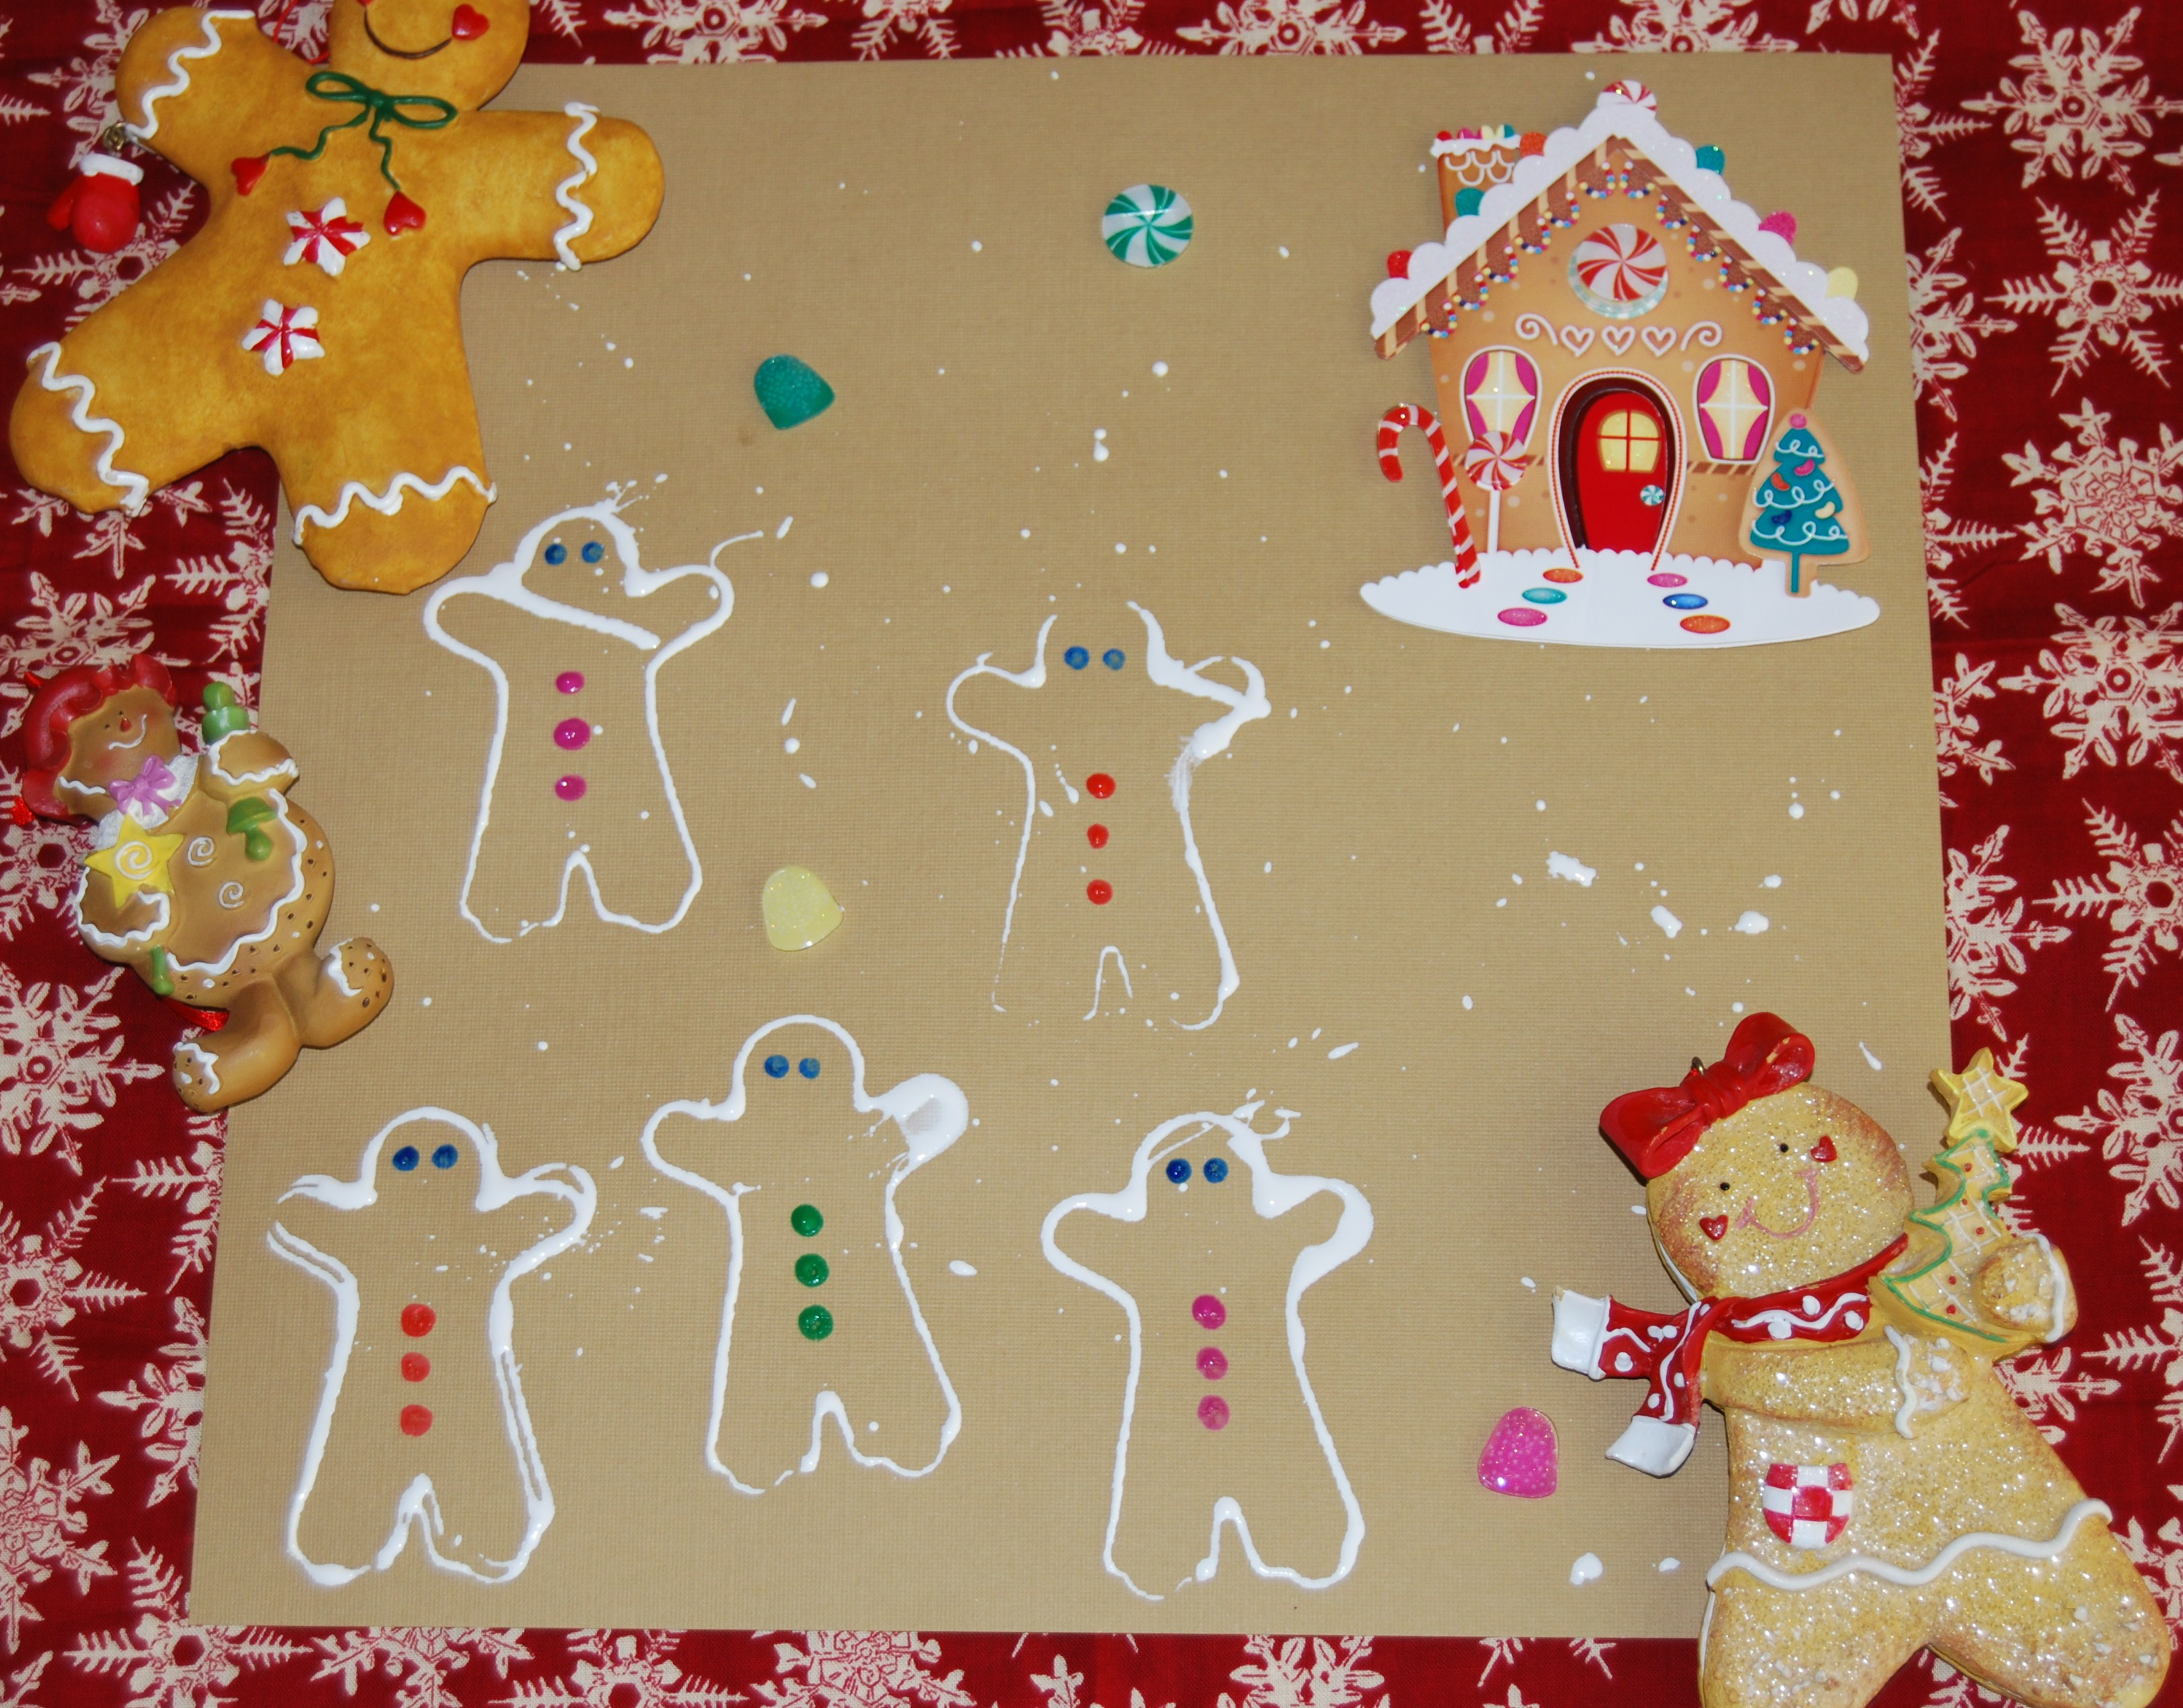 Best ideas about Preschool Art Projects . Save or Pin Gingerbread Theme Activities for Preschool and Kindergarten Now.